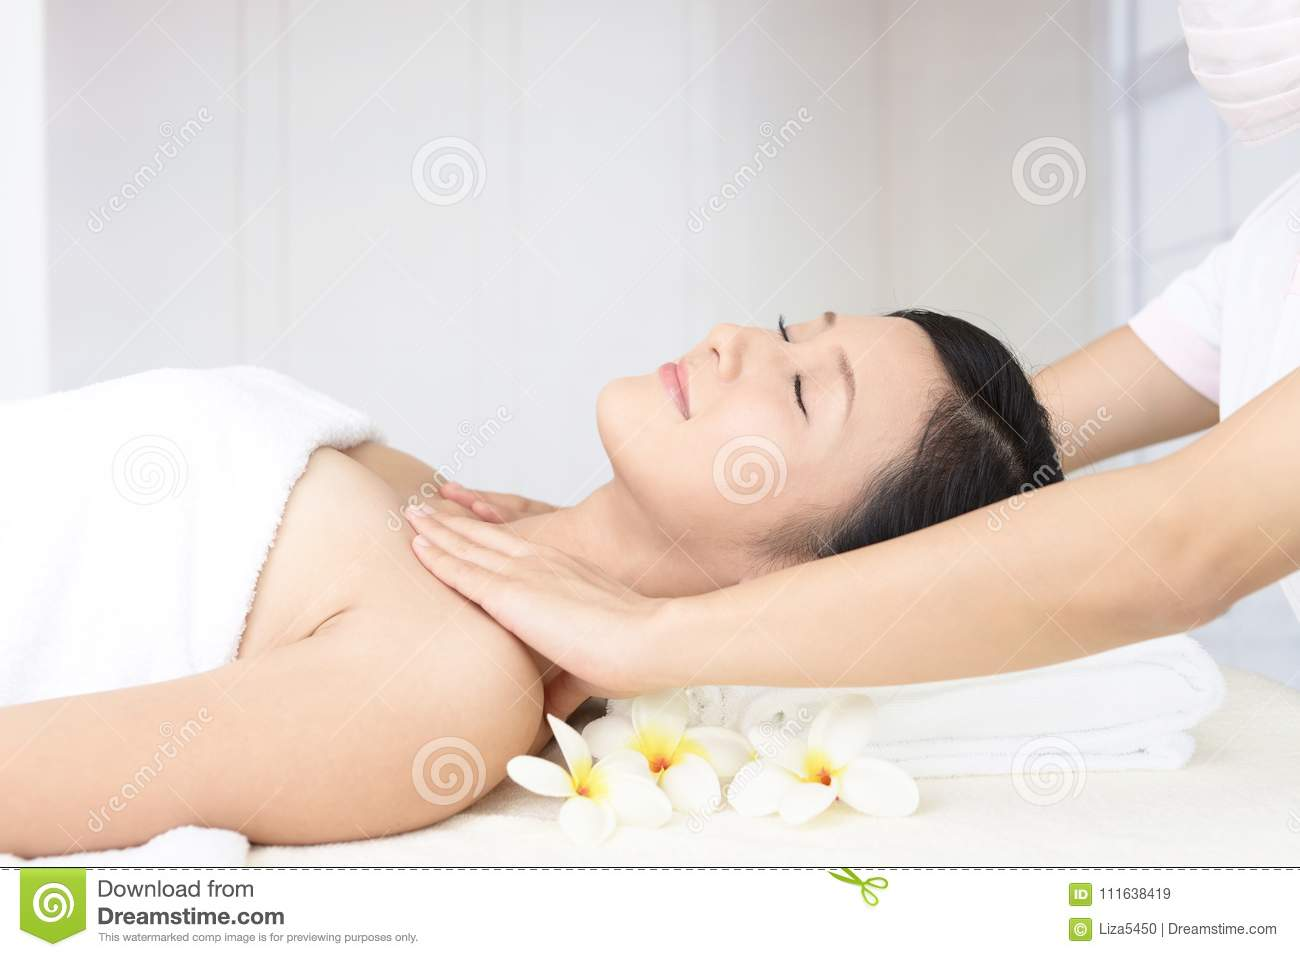 Woman Getting A Body Massage Stock Image - Image of cute ...